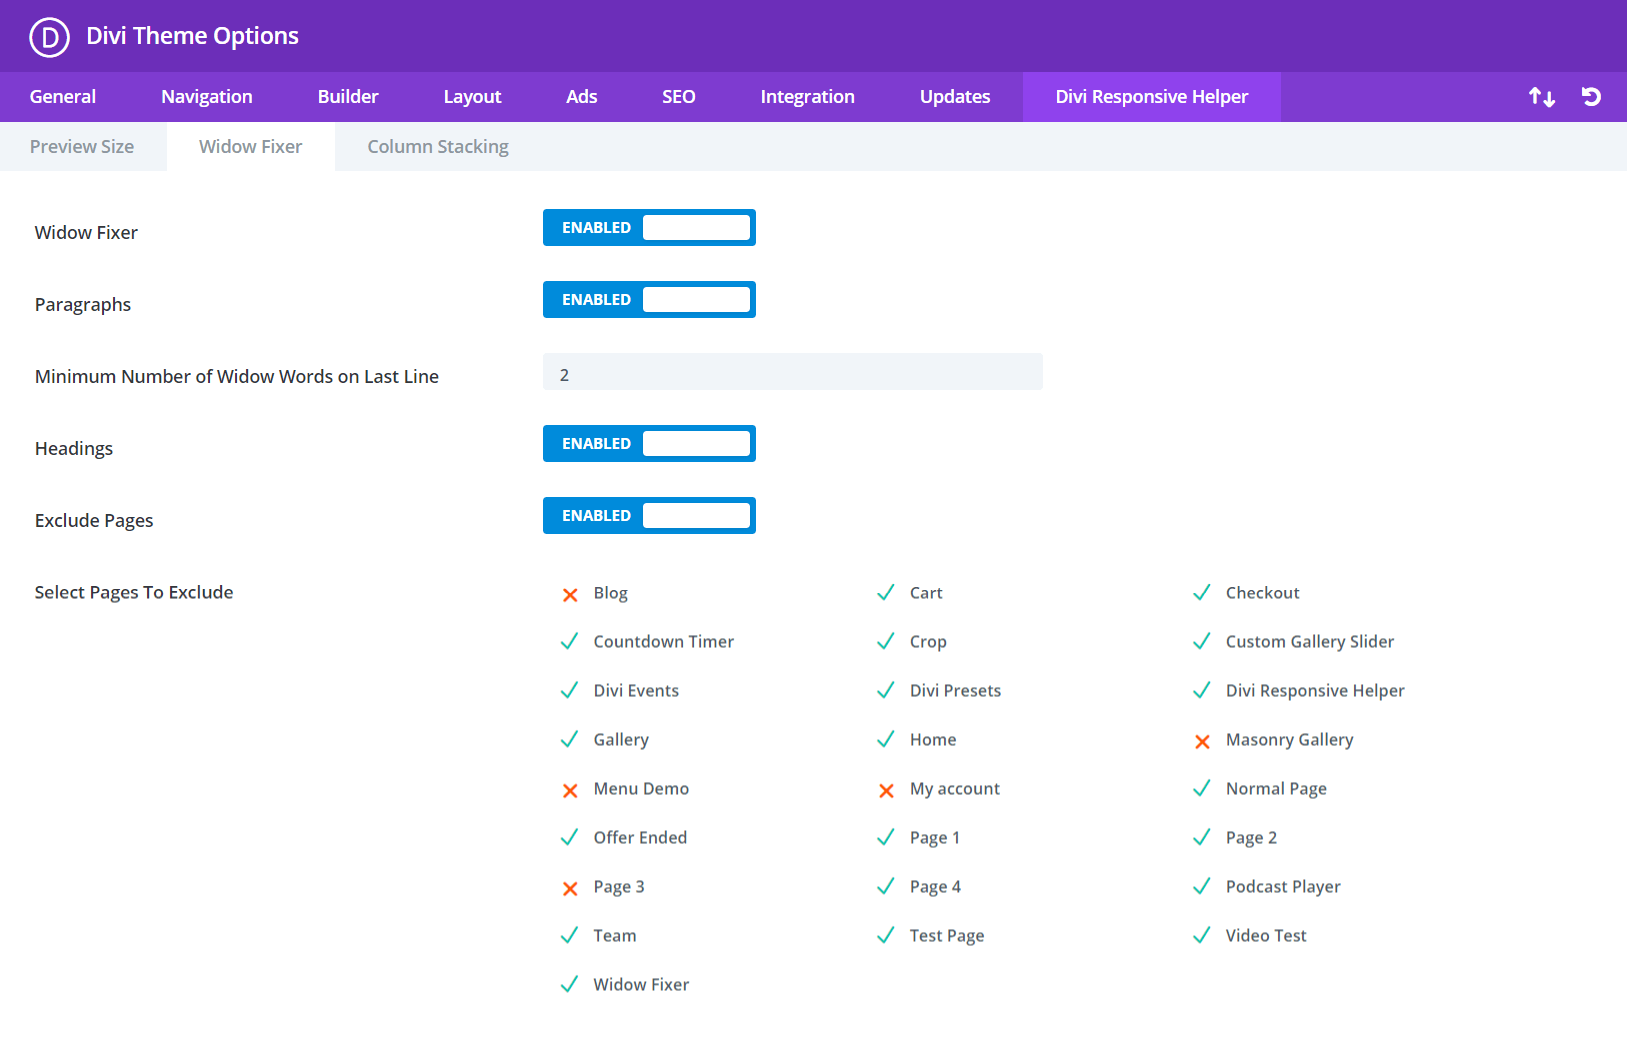 Divi Responsive Helper Widow Fixer Settings and Features